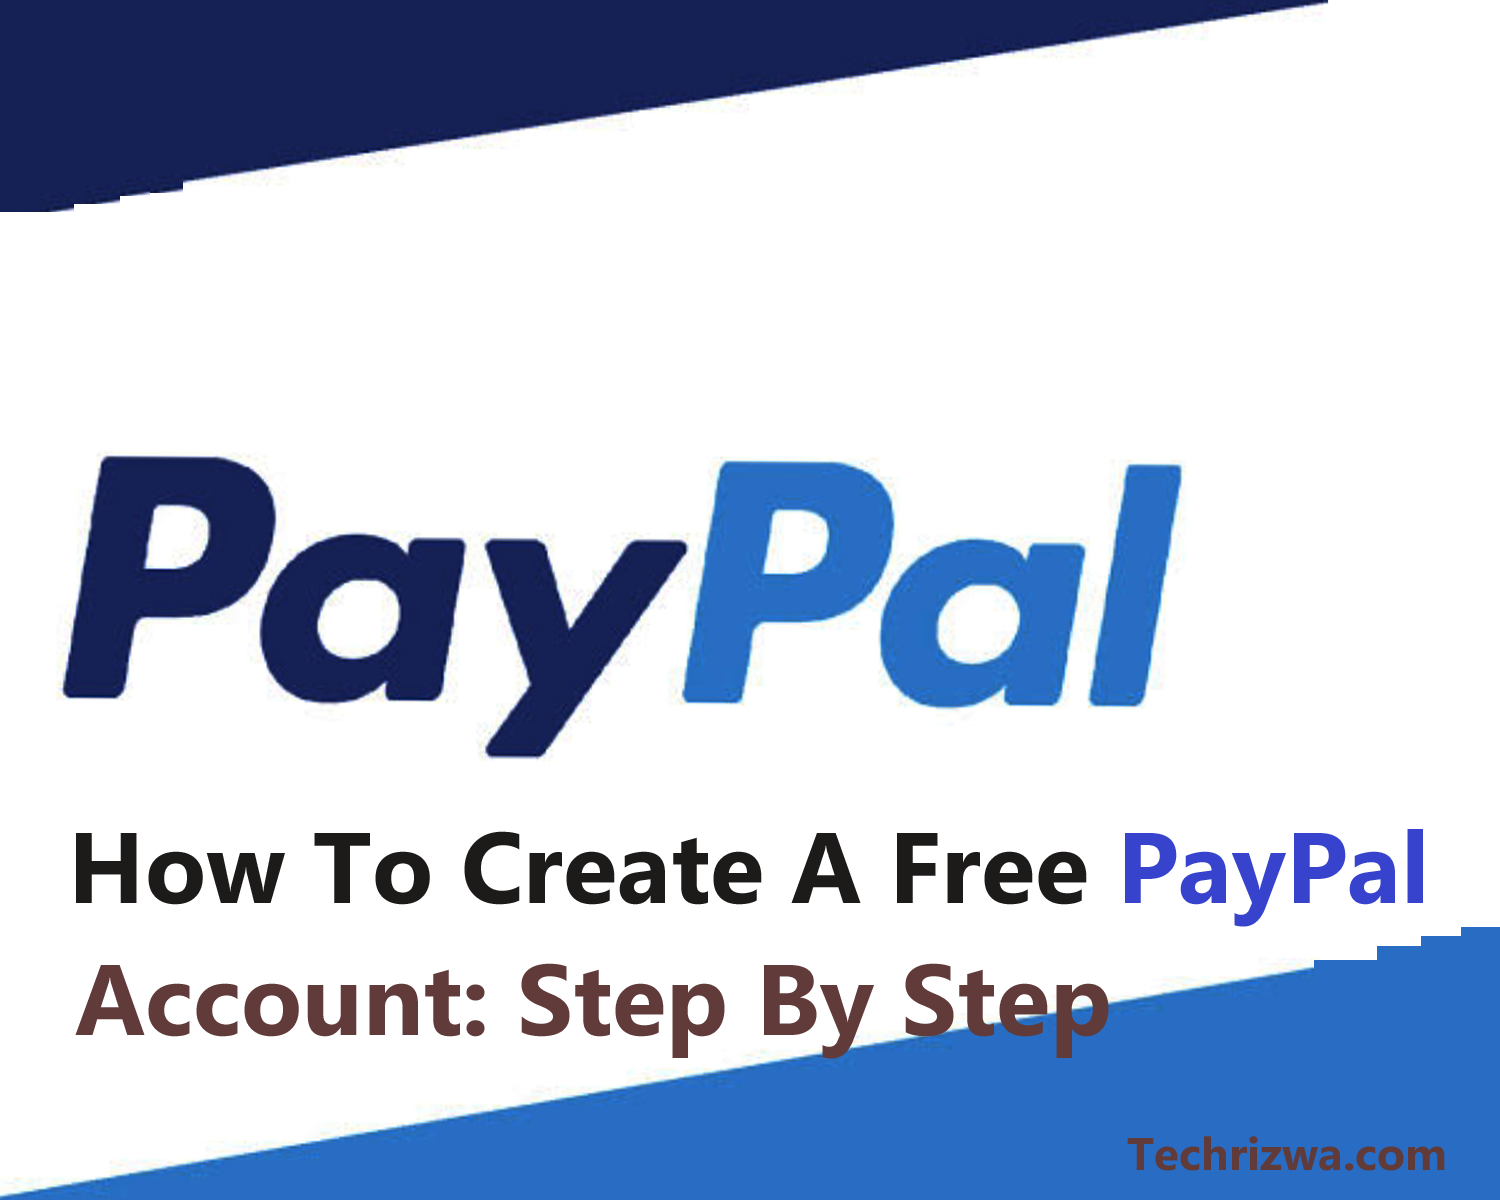 How To Create A Free PayPal Account: Step By Step